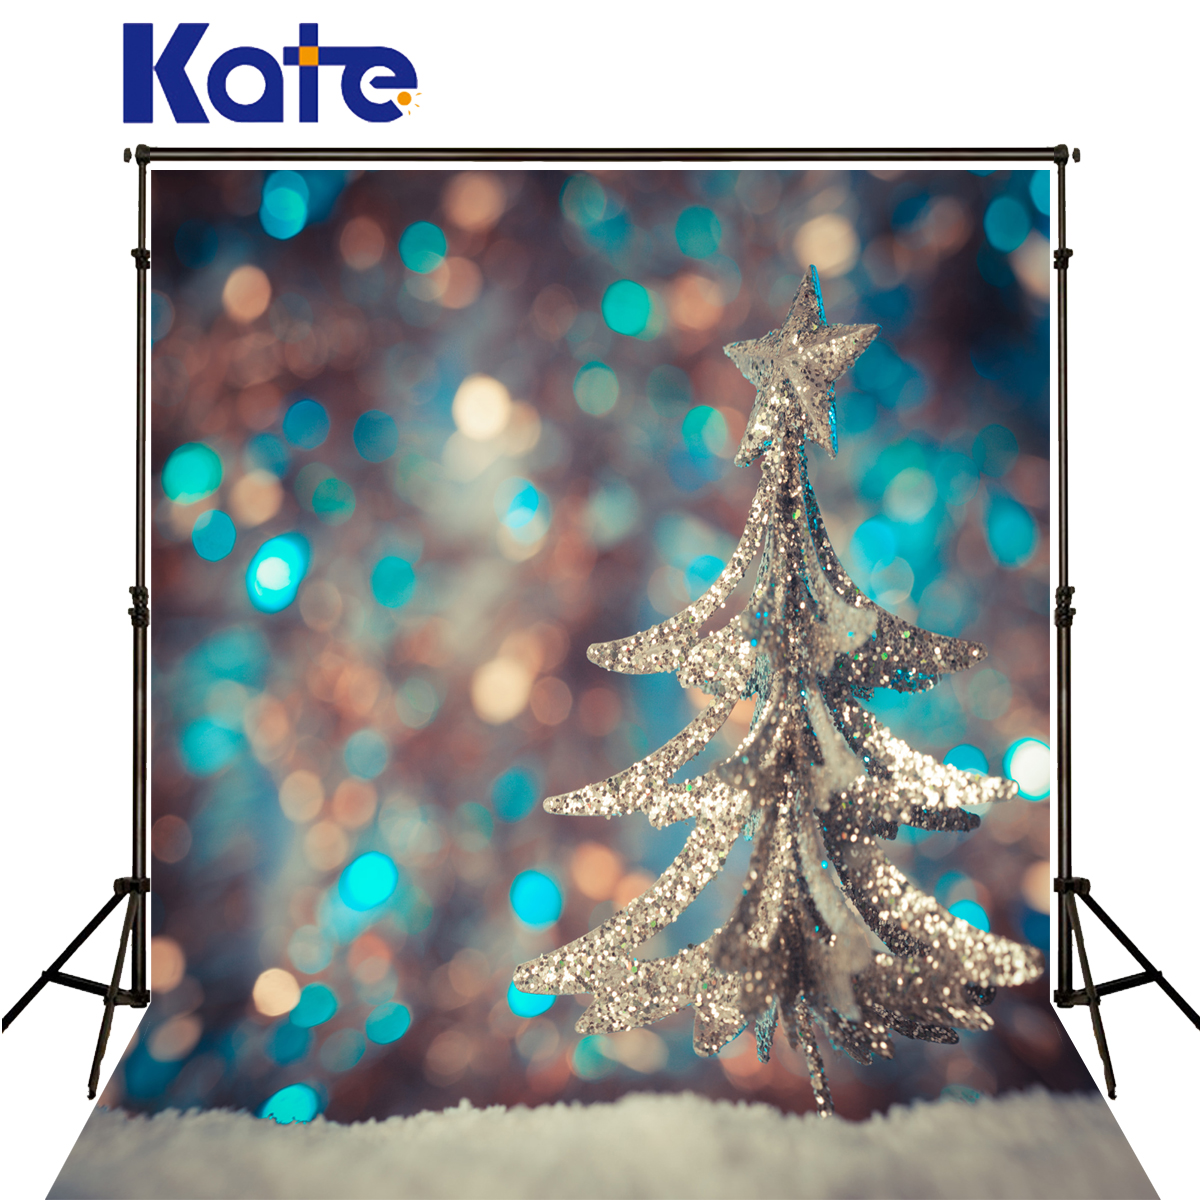 Kate Christmas Photo Backgrounds Blue Light Spot Fond De Studio De Snow Silvery Tree Photography Backdrops For Photo Shoot